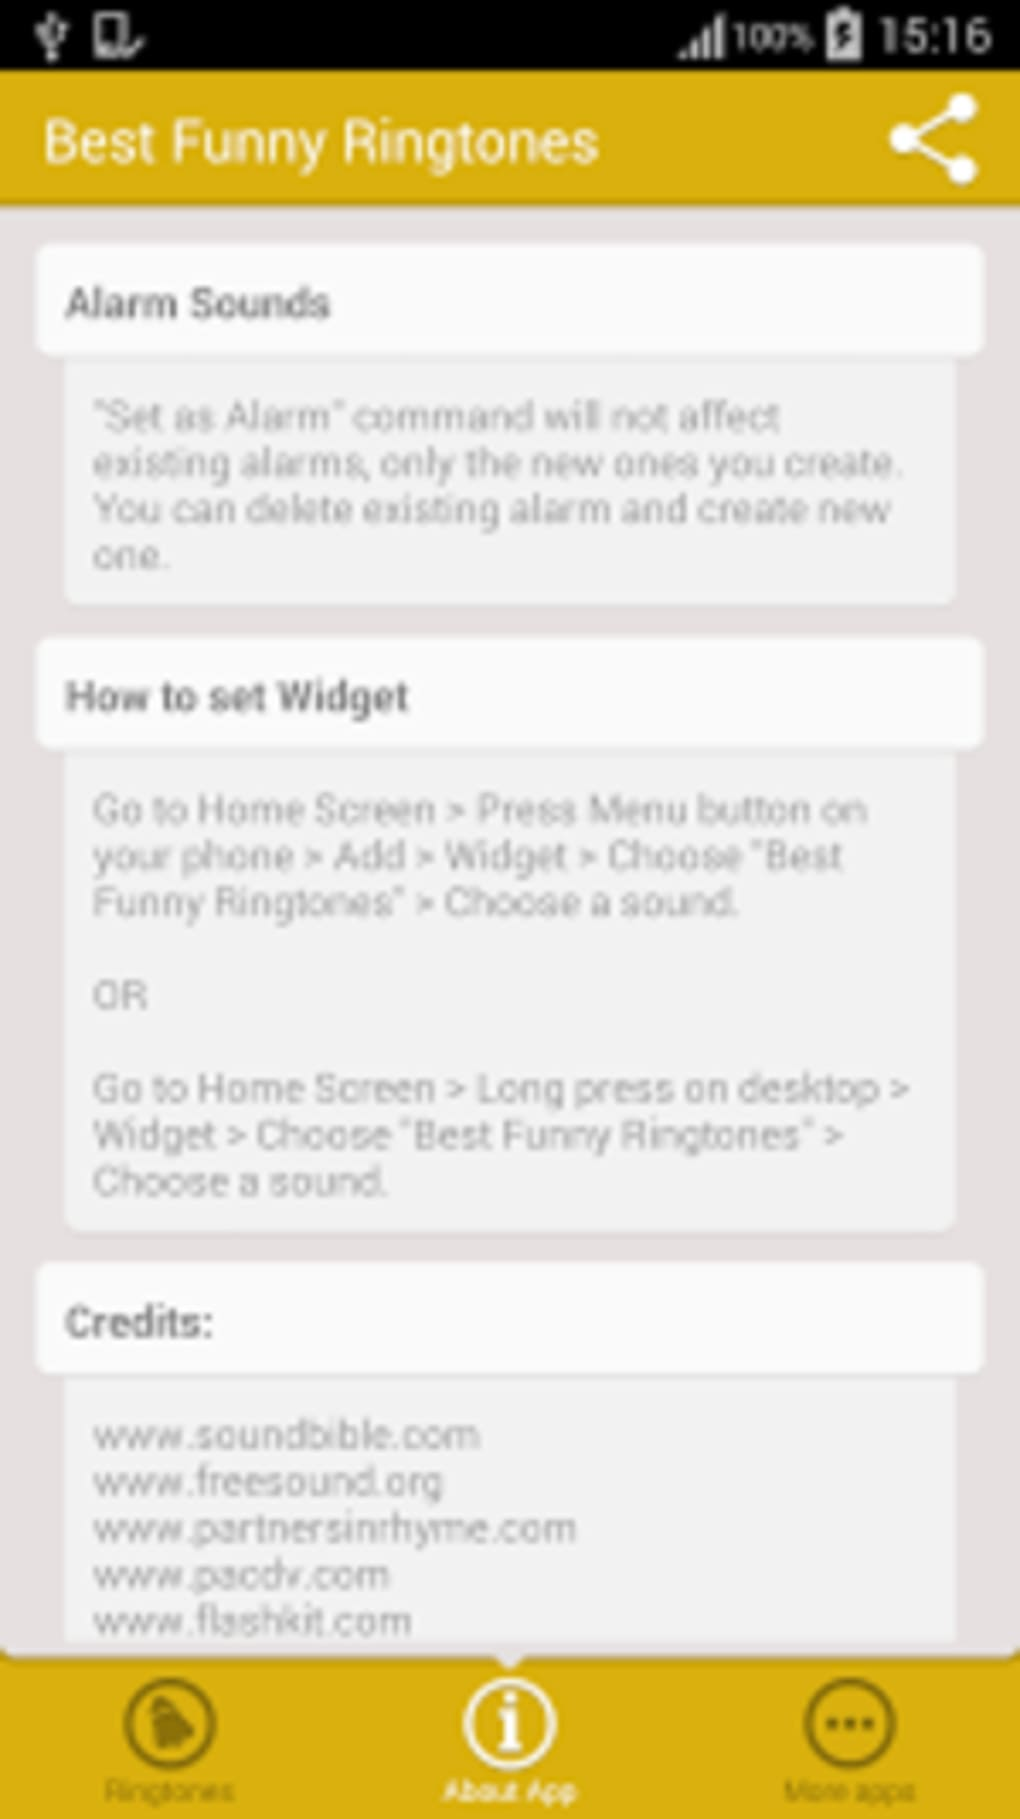 Best Funny Ringtones for Android - Download